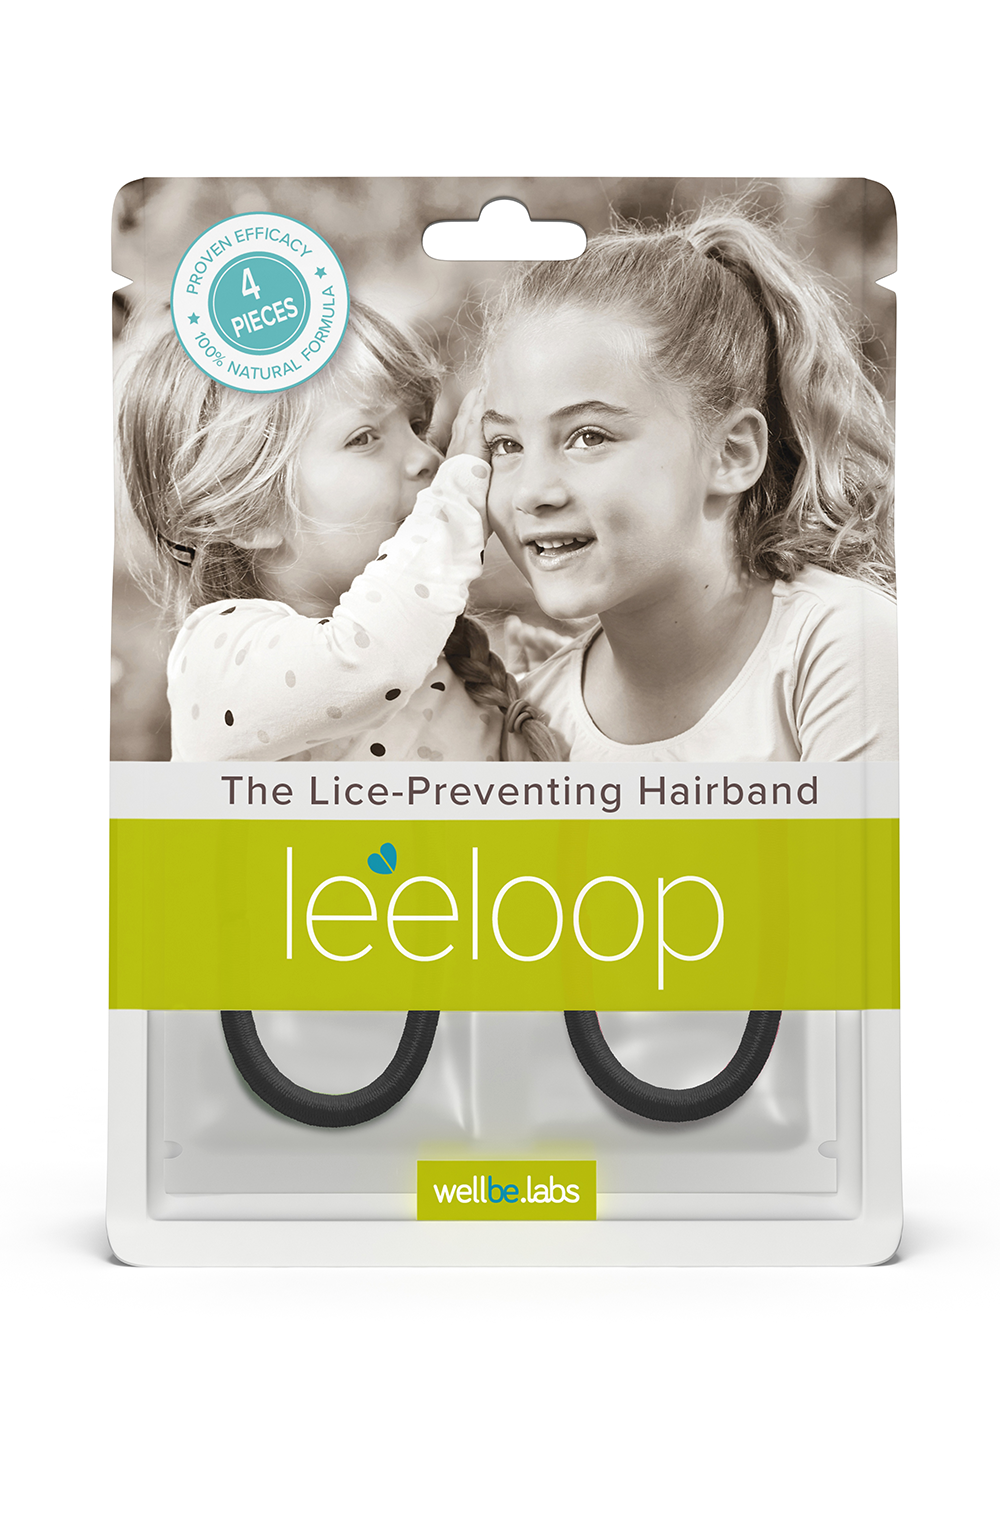 Leeloop Lice-Preventing Hairband